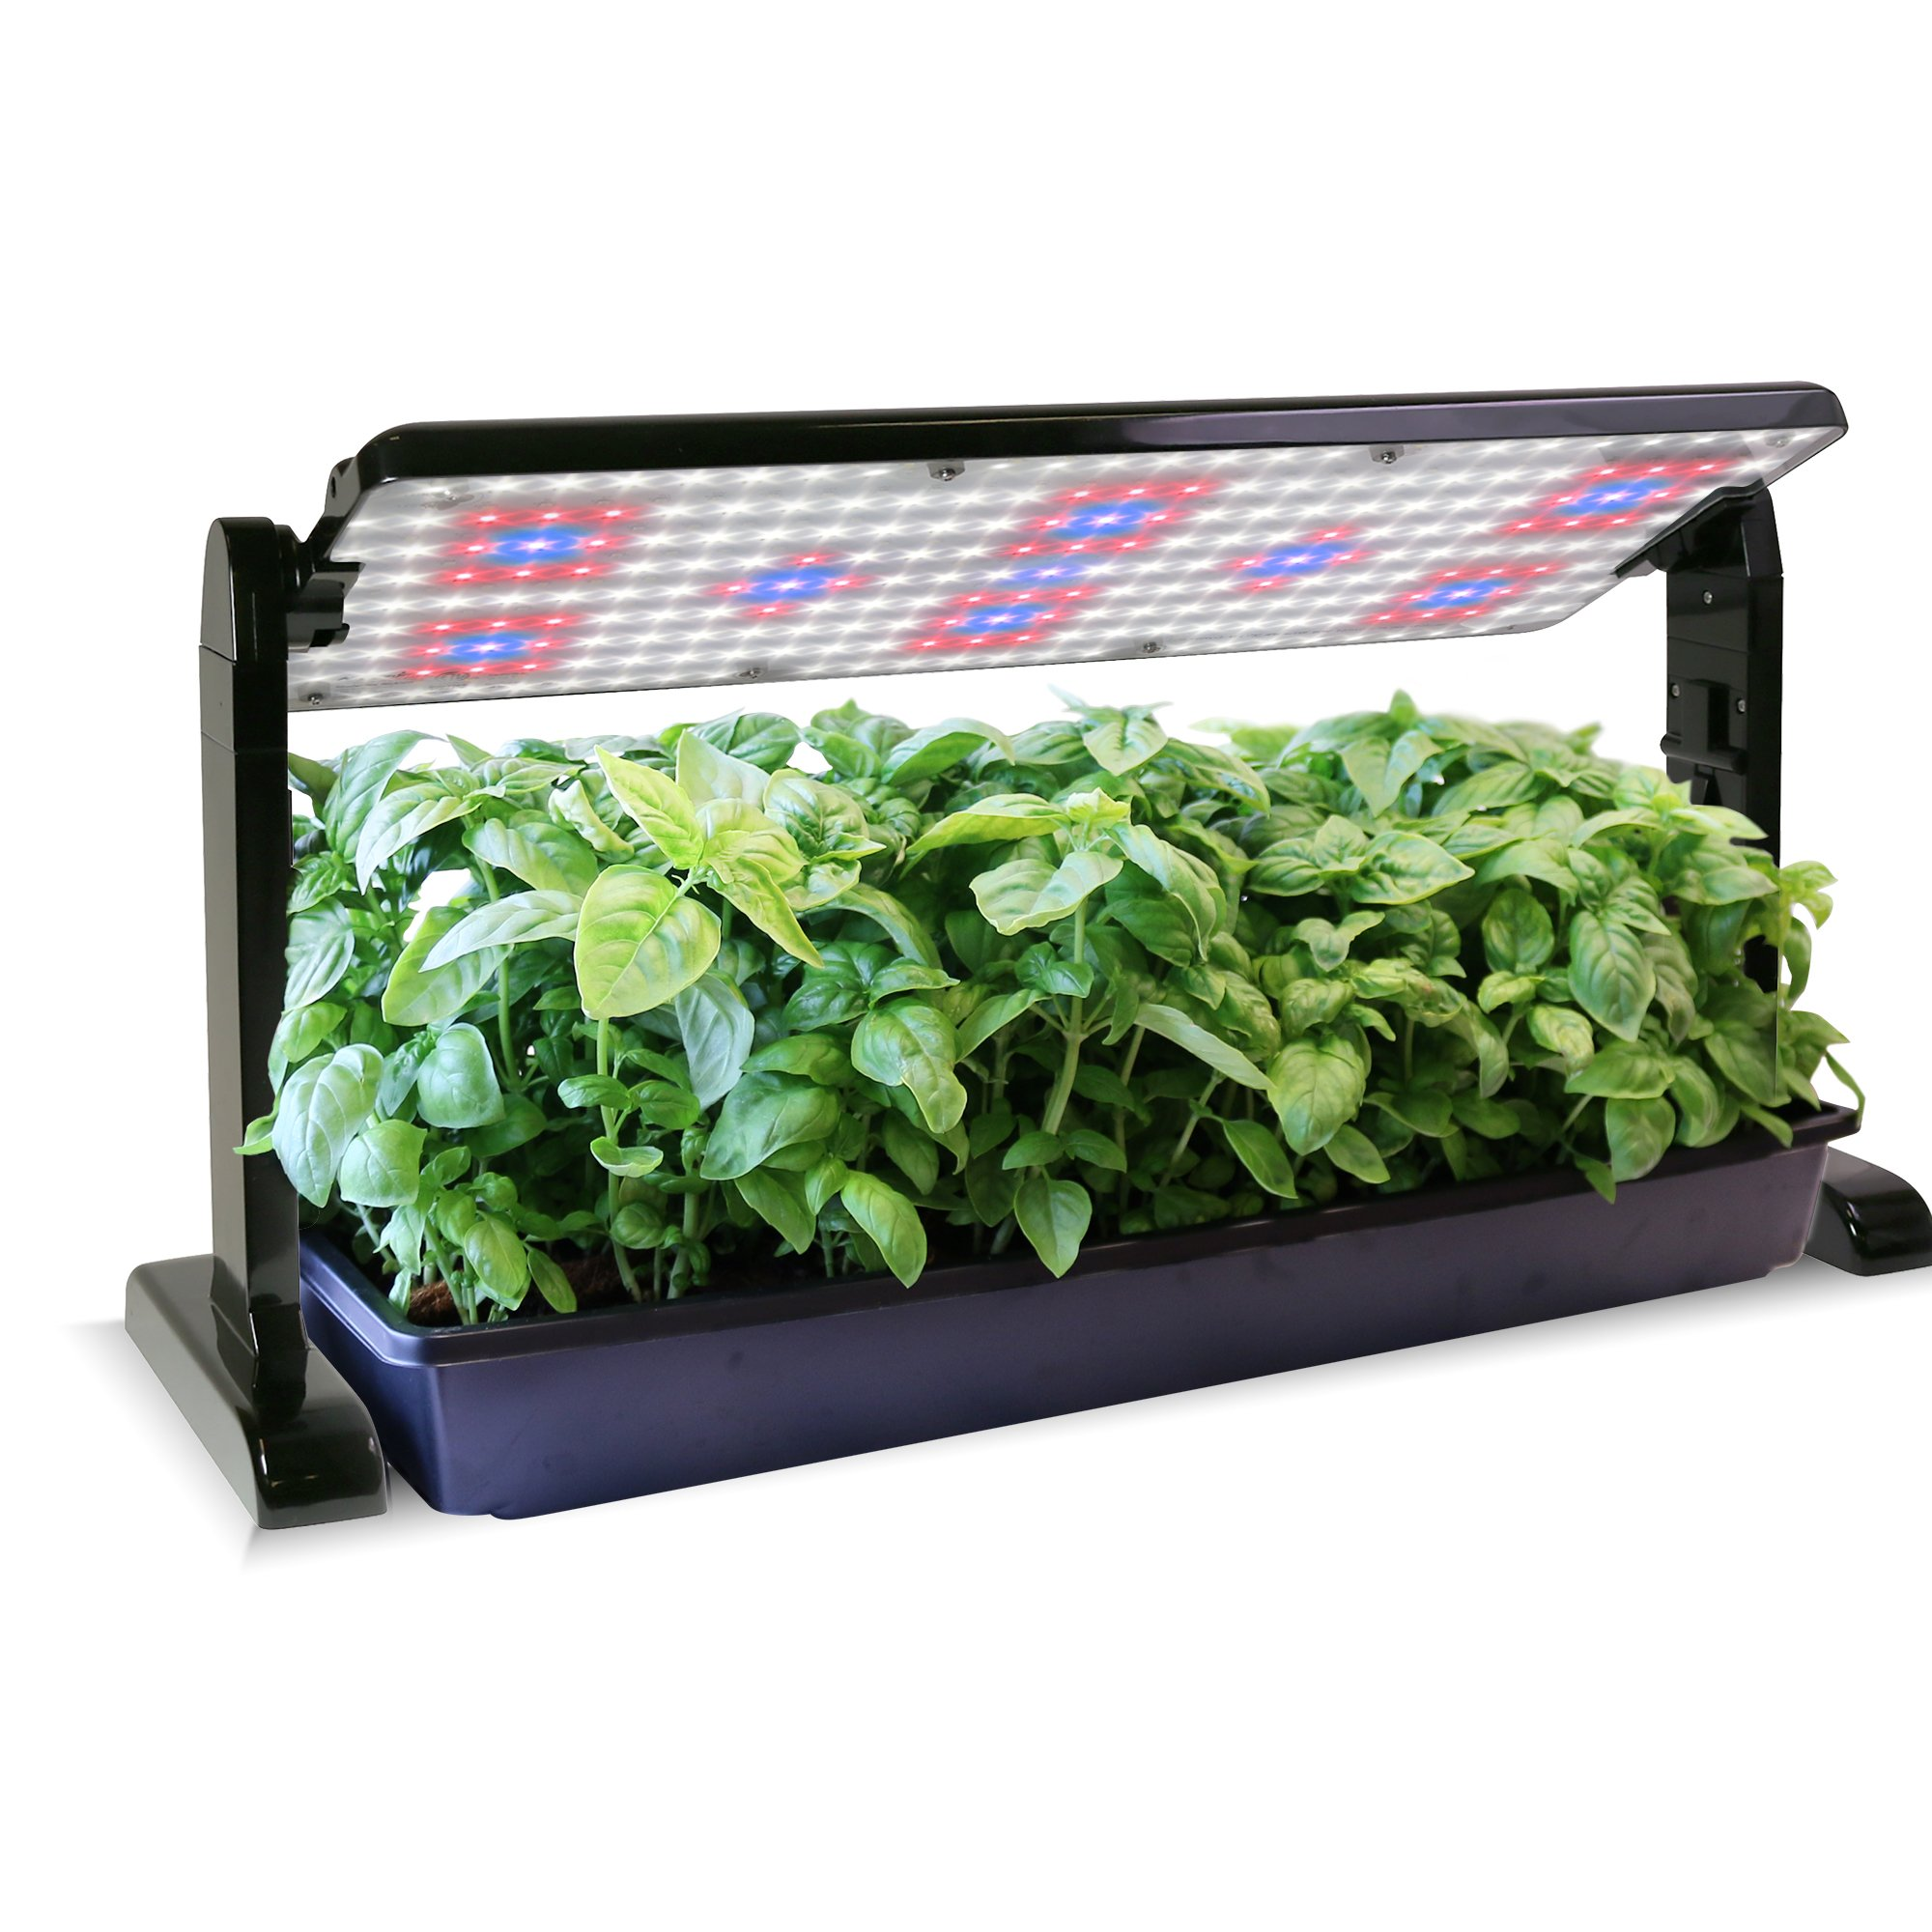 AeroGarden 45w LED Grow Light Panel by AeroGarden